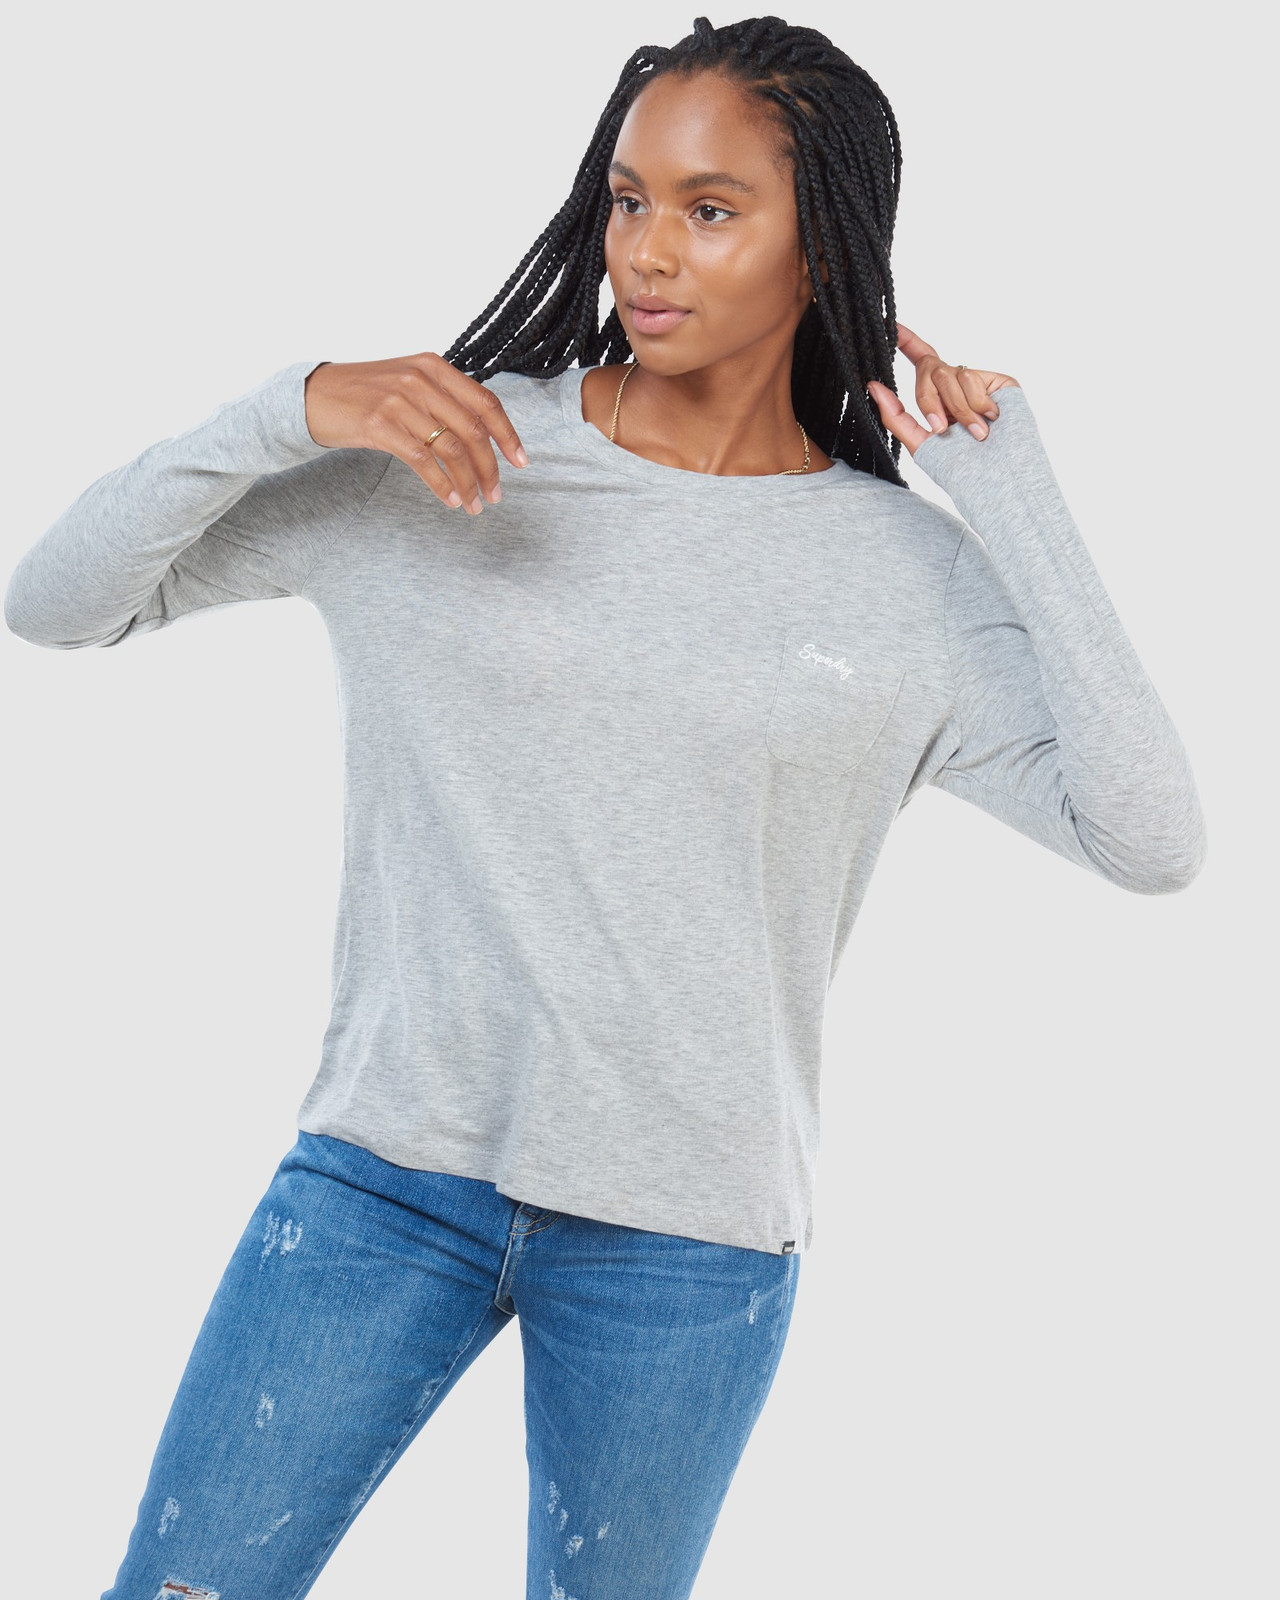 Superdry Womens SCRIPTED L/S CREW TOP Grey Long Sleeve Top 2